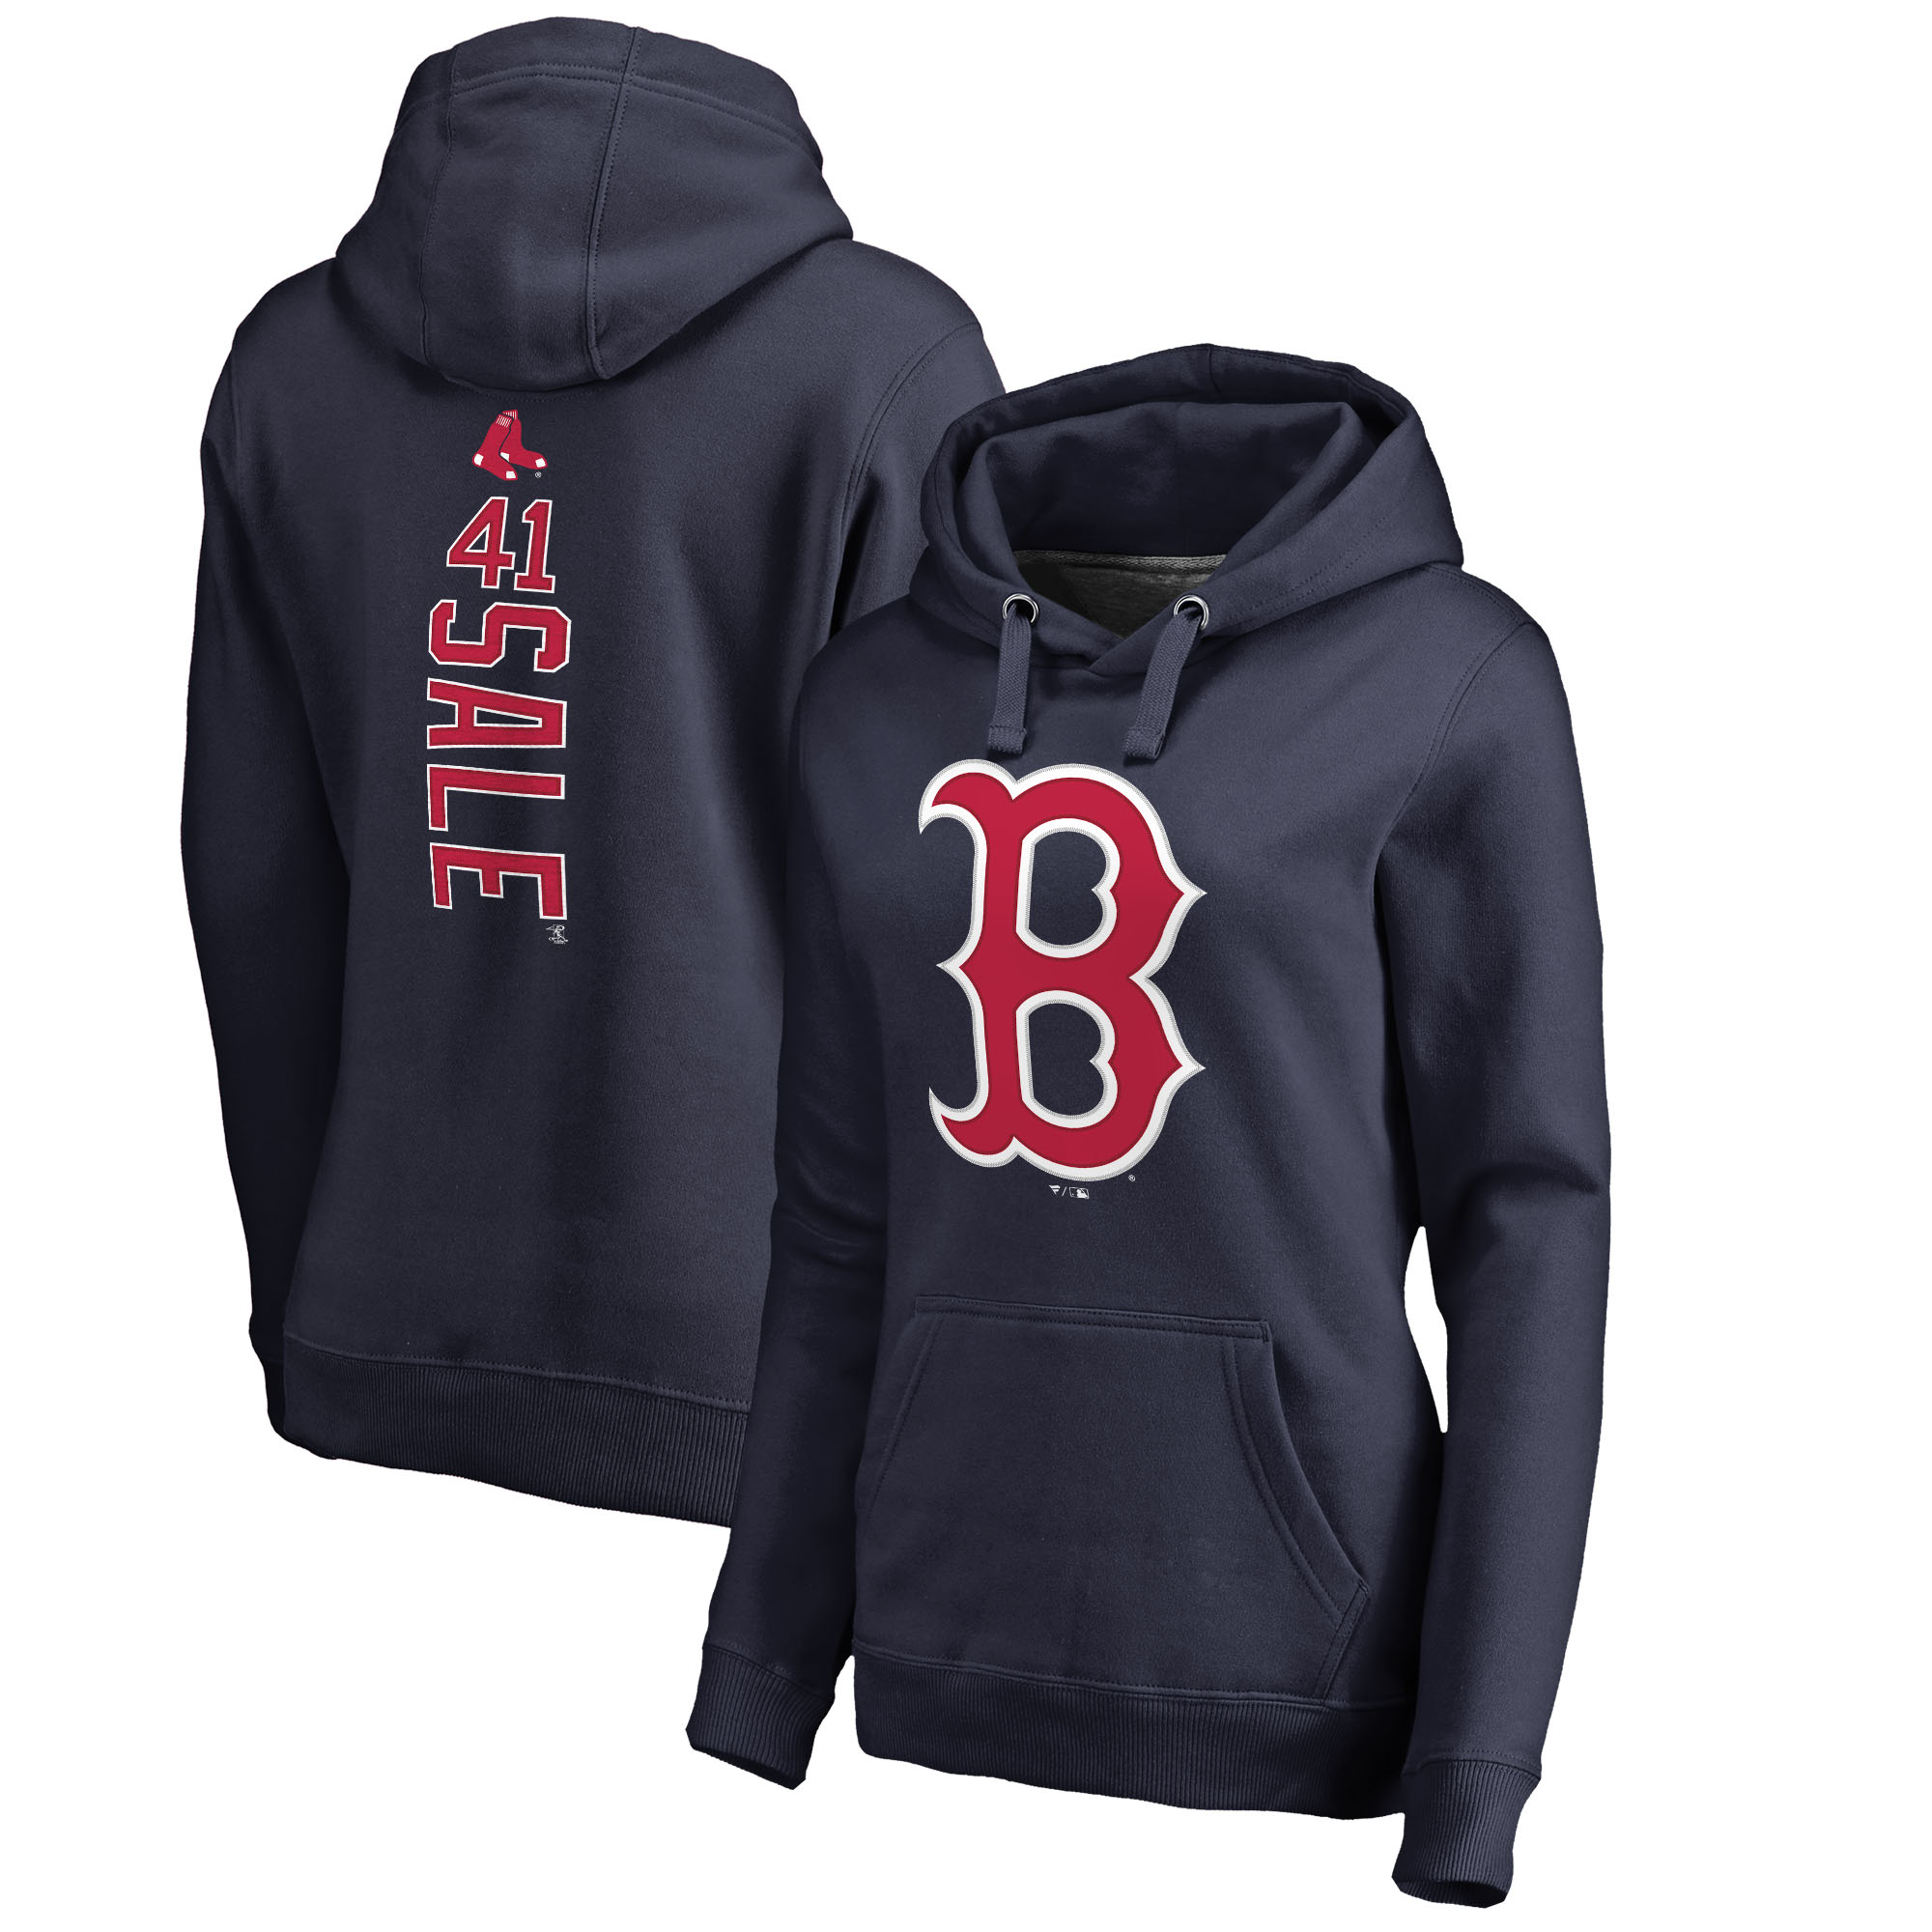 Chris Sale Boston Red Sox Fanatics Branded Women's Backer Pullover Hoodie - Navy